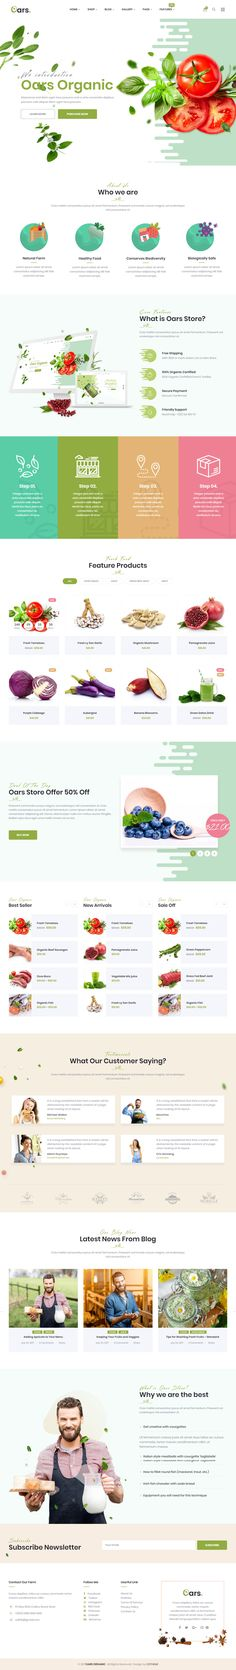 Oars is #PremiumWordPressTheme. Responsive Design. #RetinaReady. Bootstrap 3. WooCommerce. Visual Composer. If you like this #OrganicFoodTheme visit our handpicked list of best WordPress #OrganicFood Themes at: http://www.responsivemiracle.com/best-wordpress-organic-food-theme/